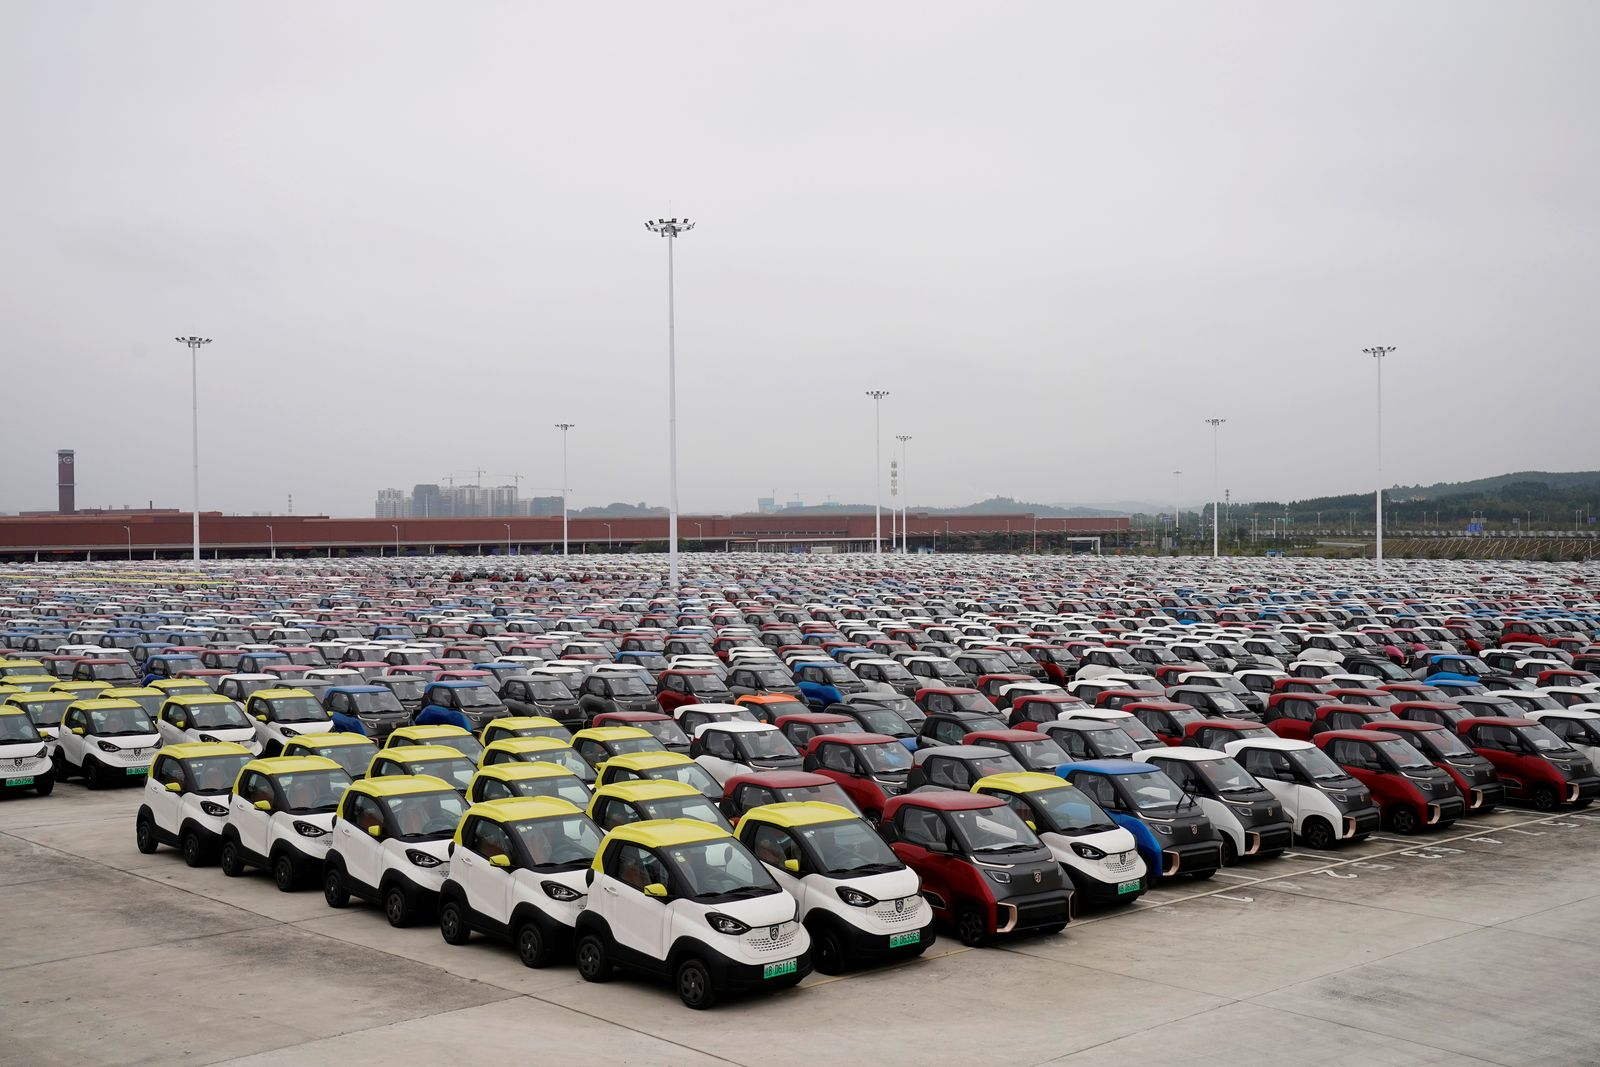 Baojun E100 and E200 all-electric battery cars sit parked at a parking lot operated by General Motors Co and its local joint-venture partners in Liuzho